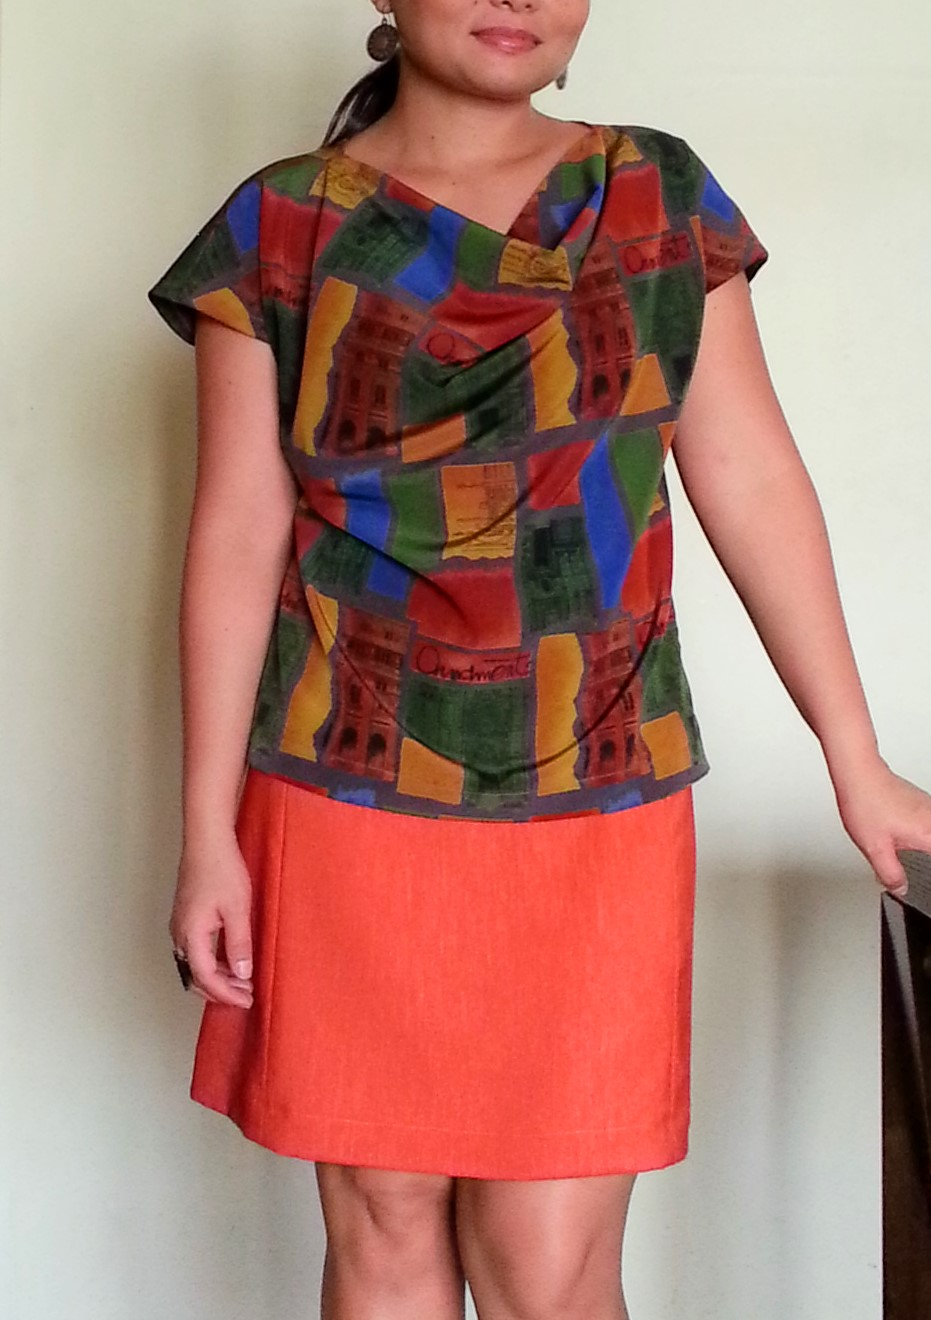 http://velvetribbonsew.blogspot.com/2013/05/burda-sew-along-light-cowl-top-012013_30.html